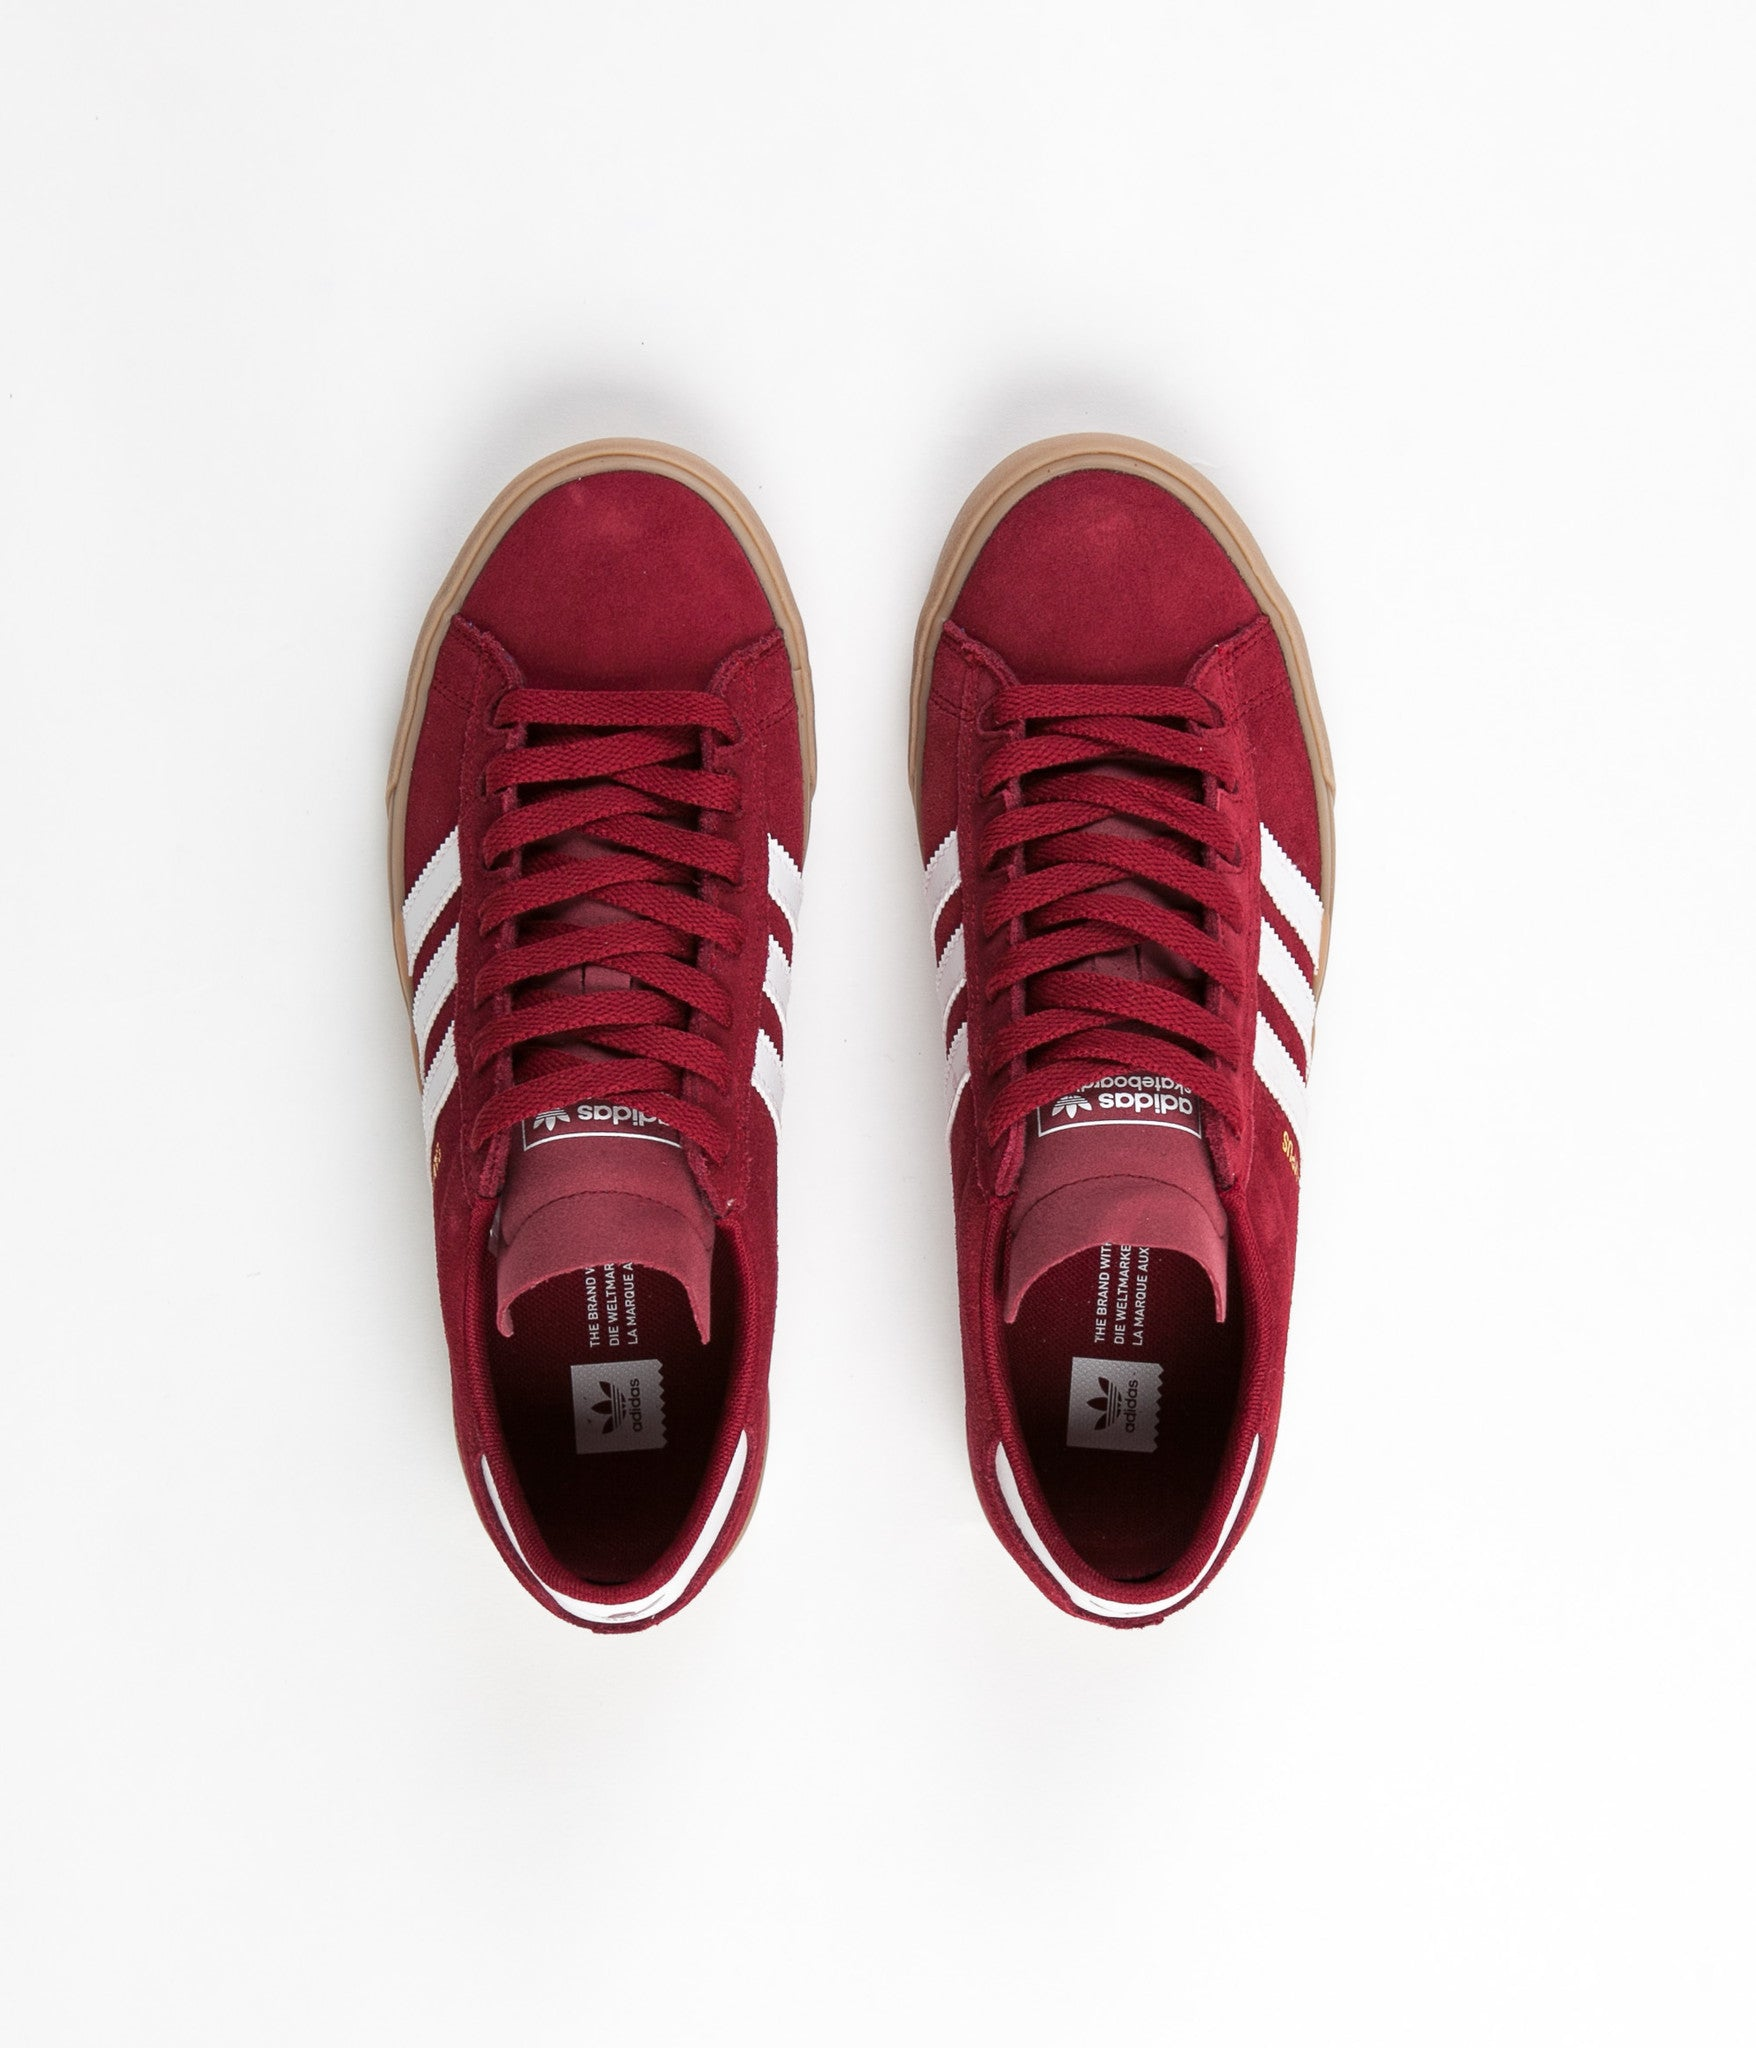 best sneakers 279d8 af8cb Adidas Campus Vulc II Adv Shoes - Collegiate Burgundy  White